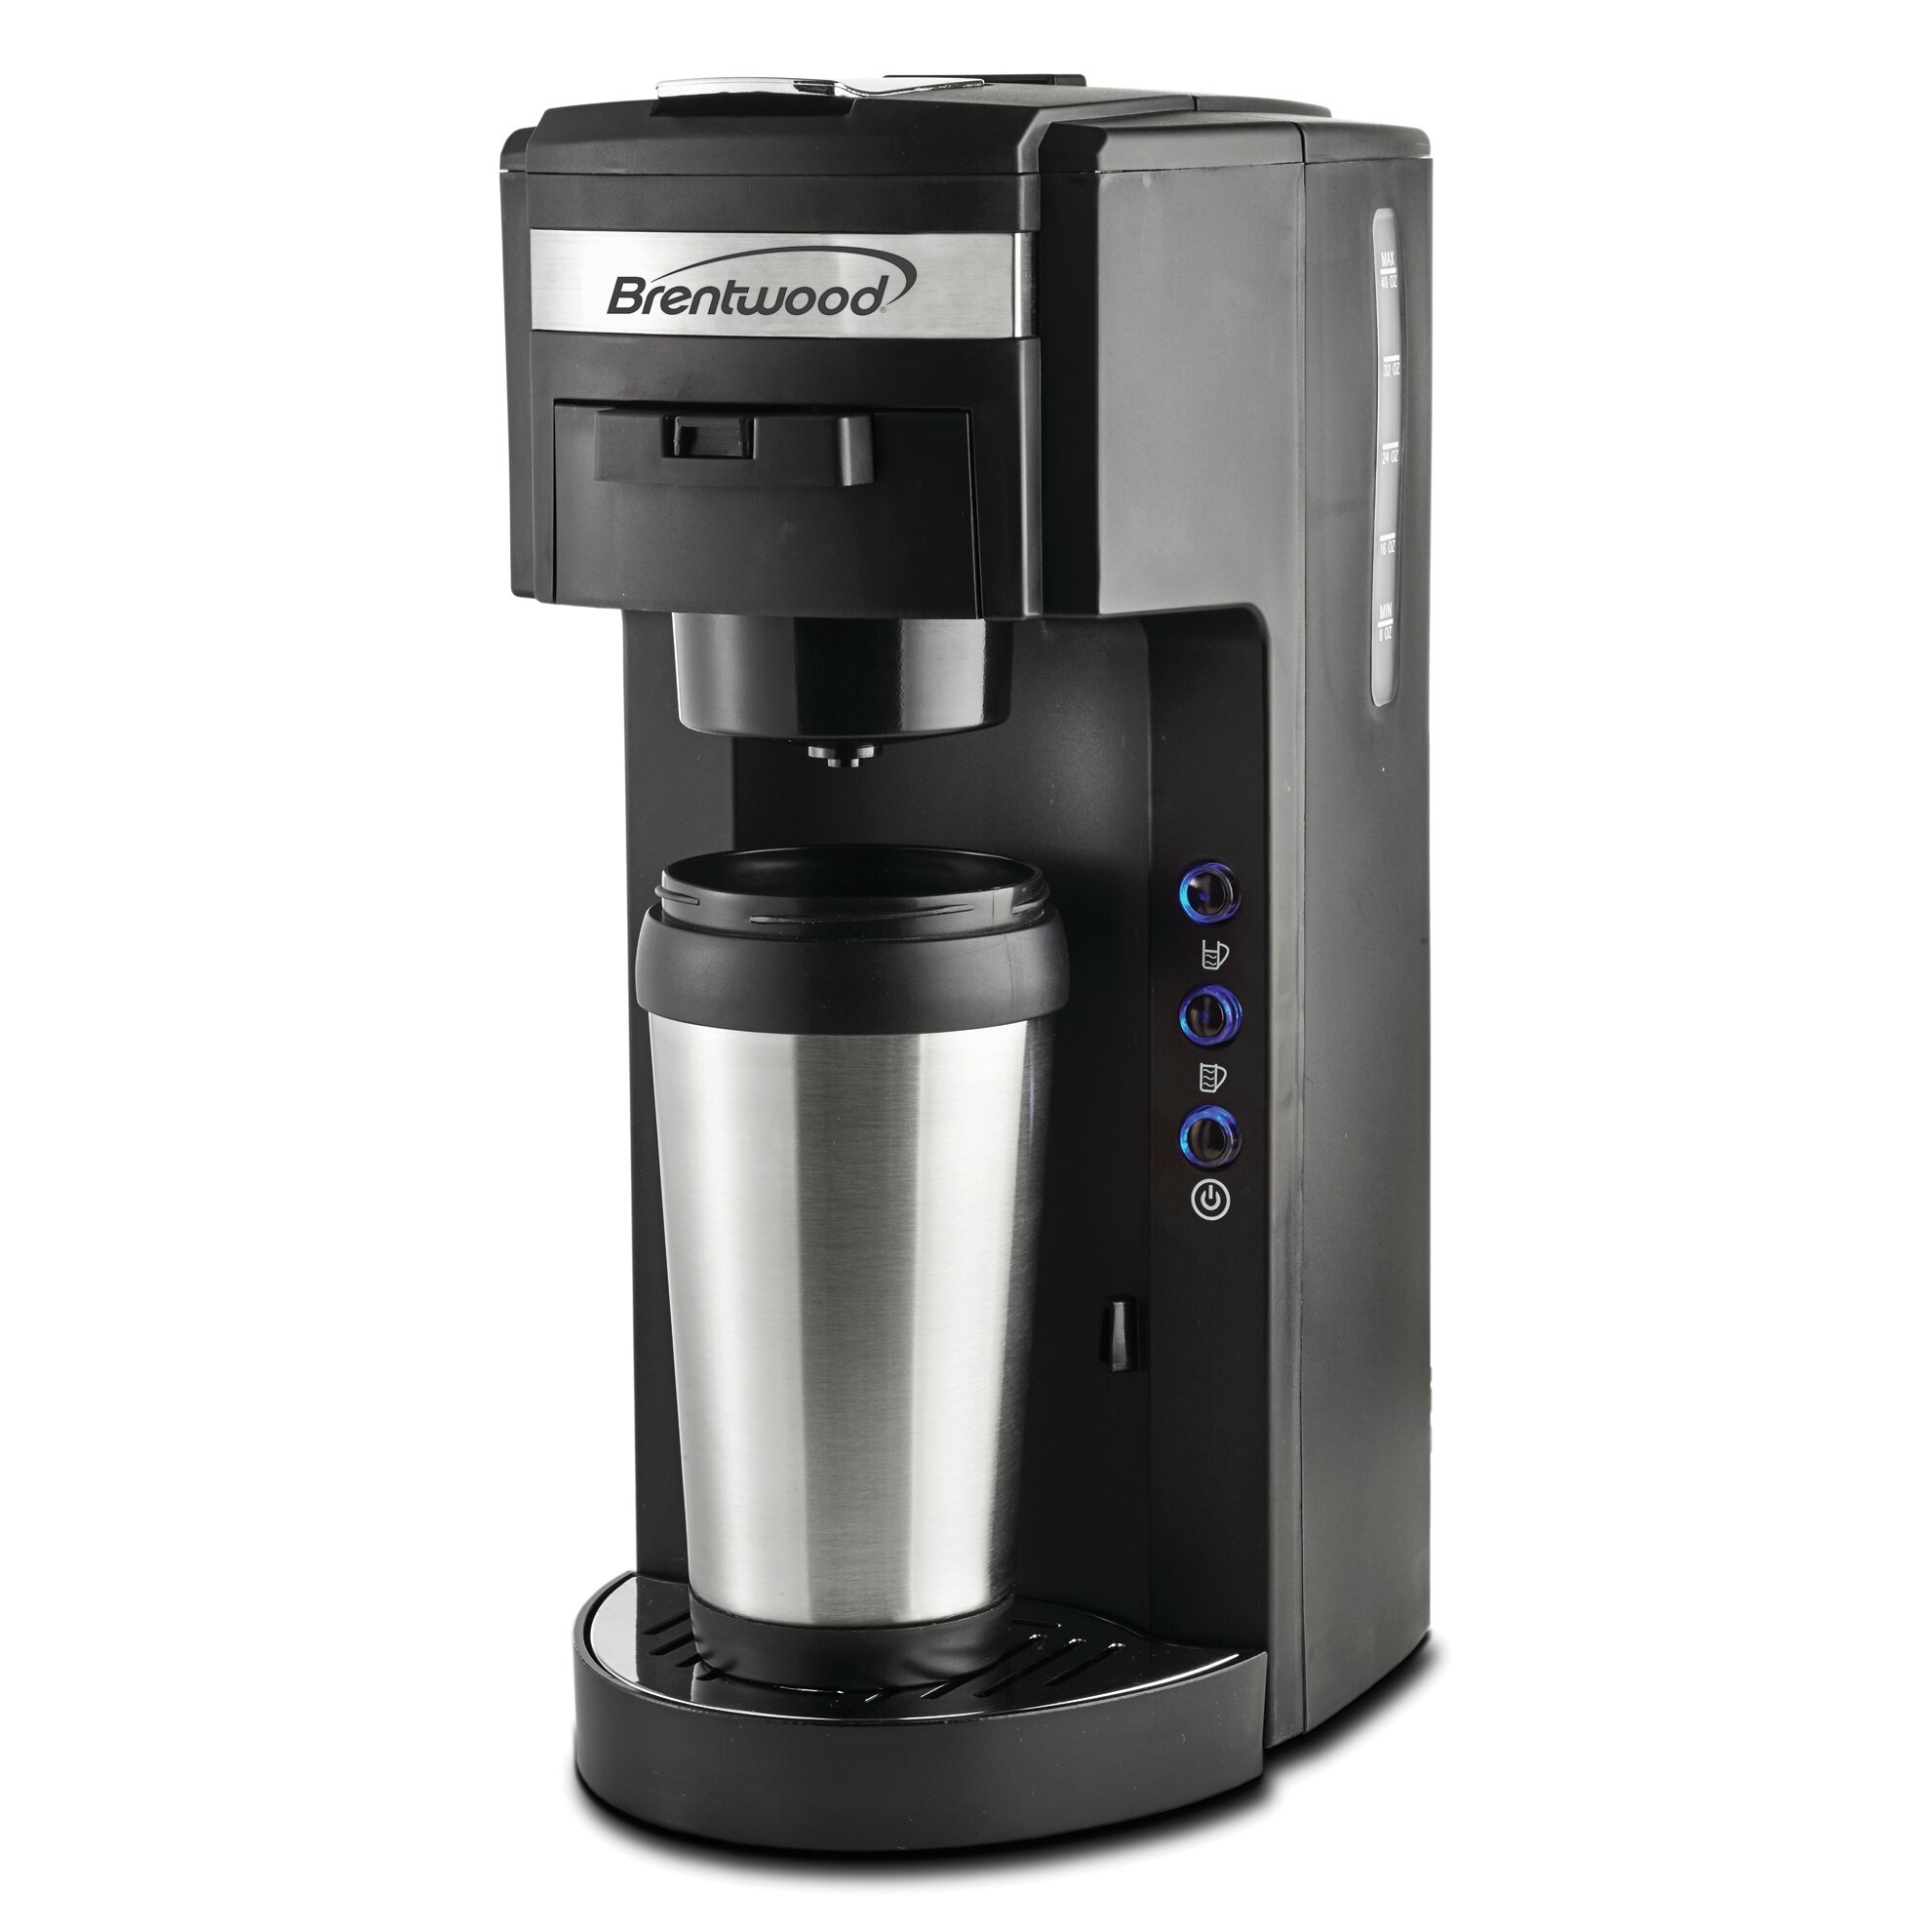 Flavia One Cup Coffee Maker : Brentwood K-Cup Coffee Maker Wayfair